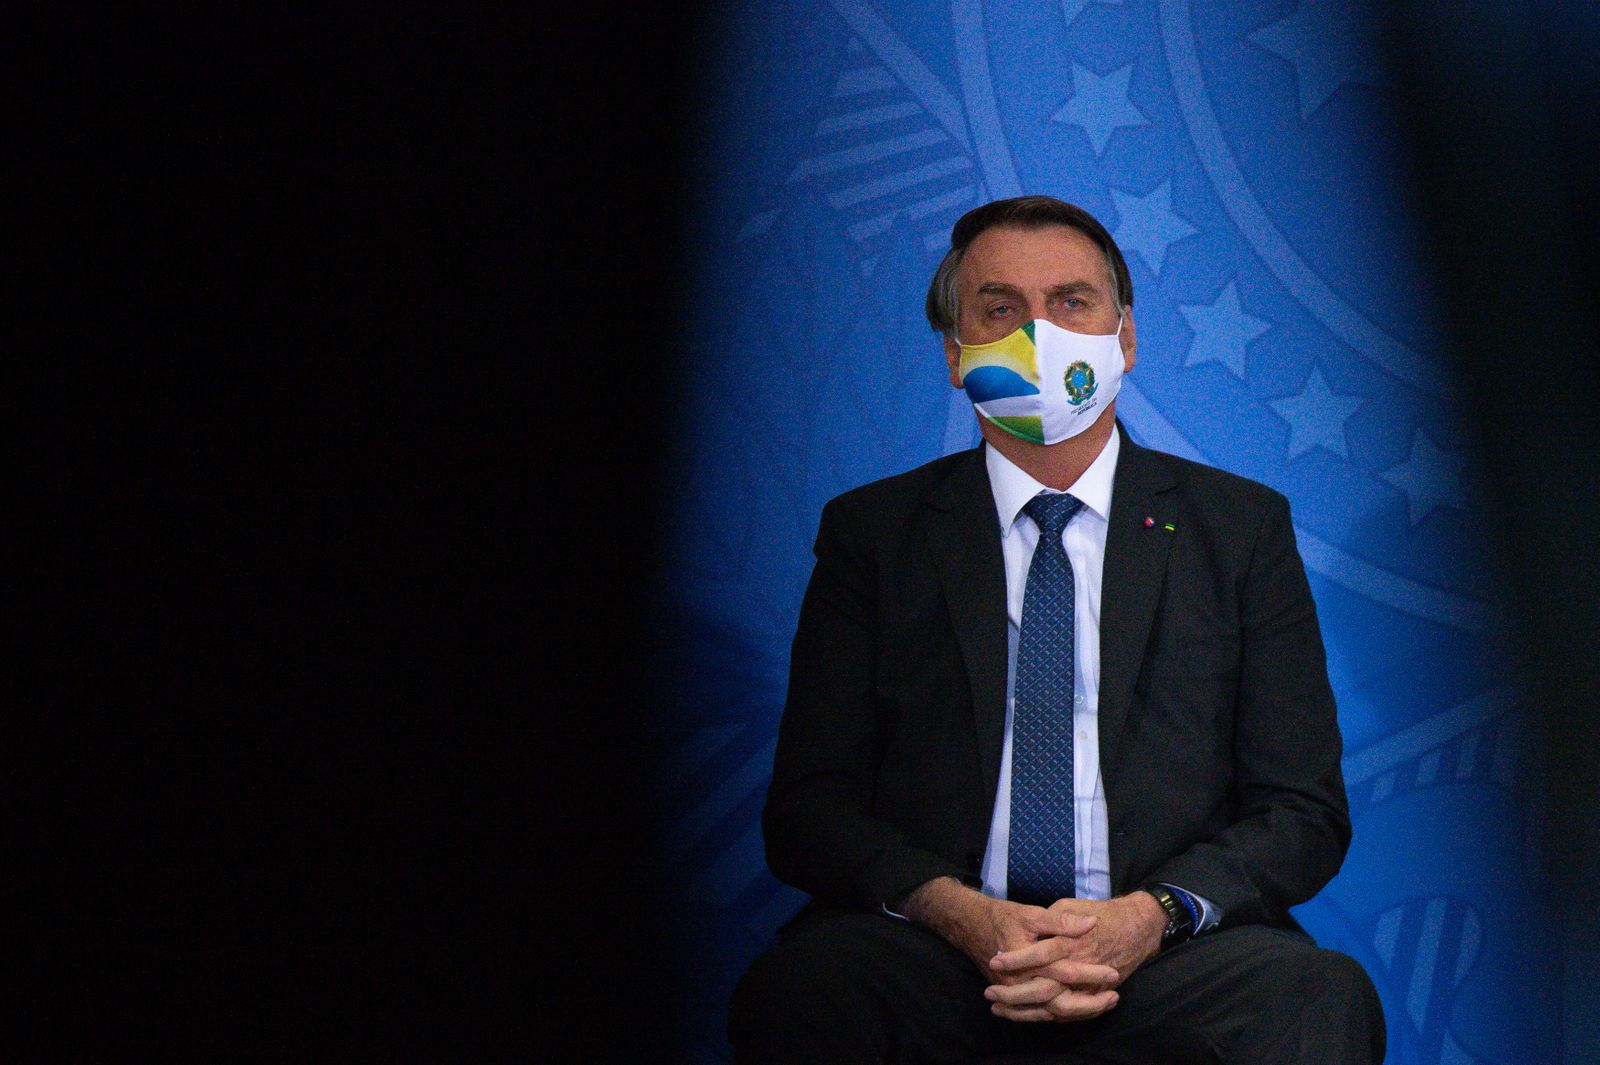 Bolsonaro Announces Massive Purchase of Drugs To Treat Covid Patients As He Faces Probe on Pandemic Mismanagement